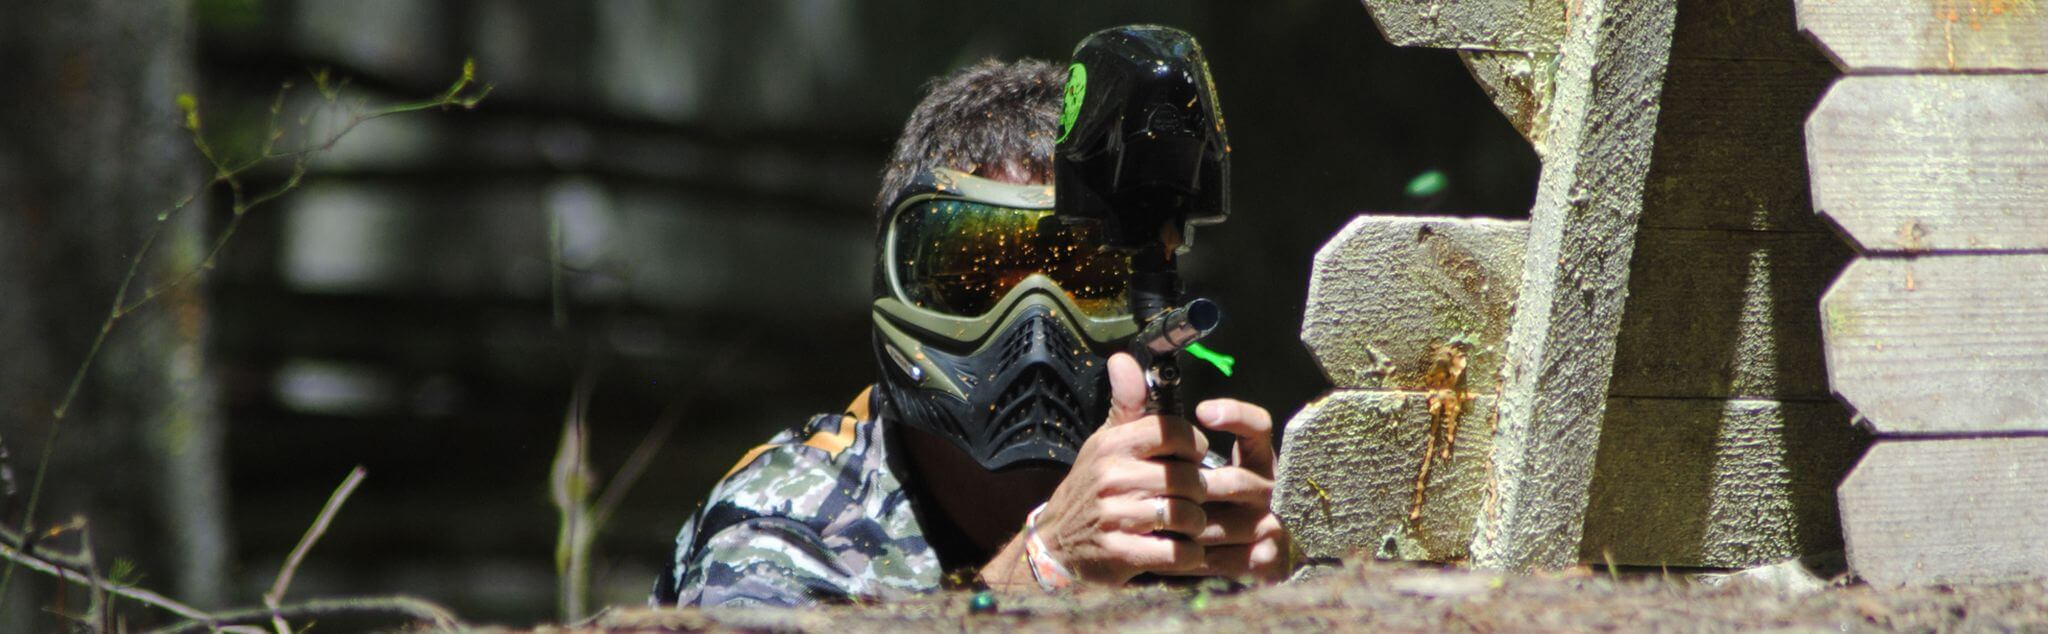 Paintball en Piedralaves